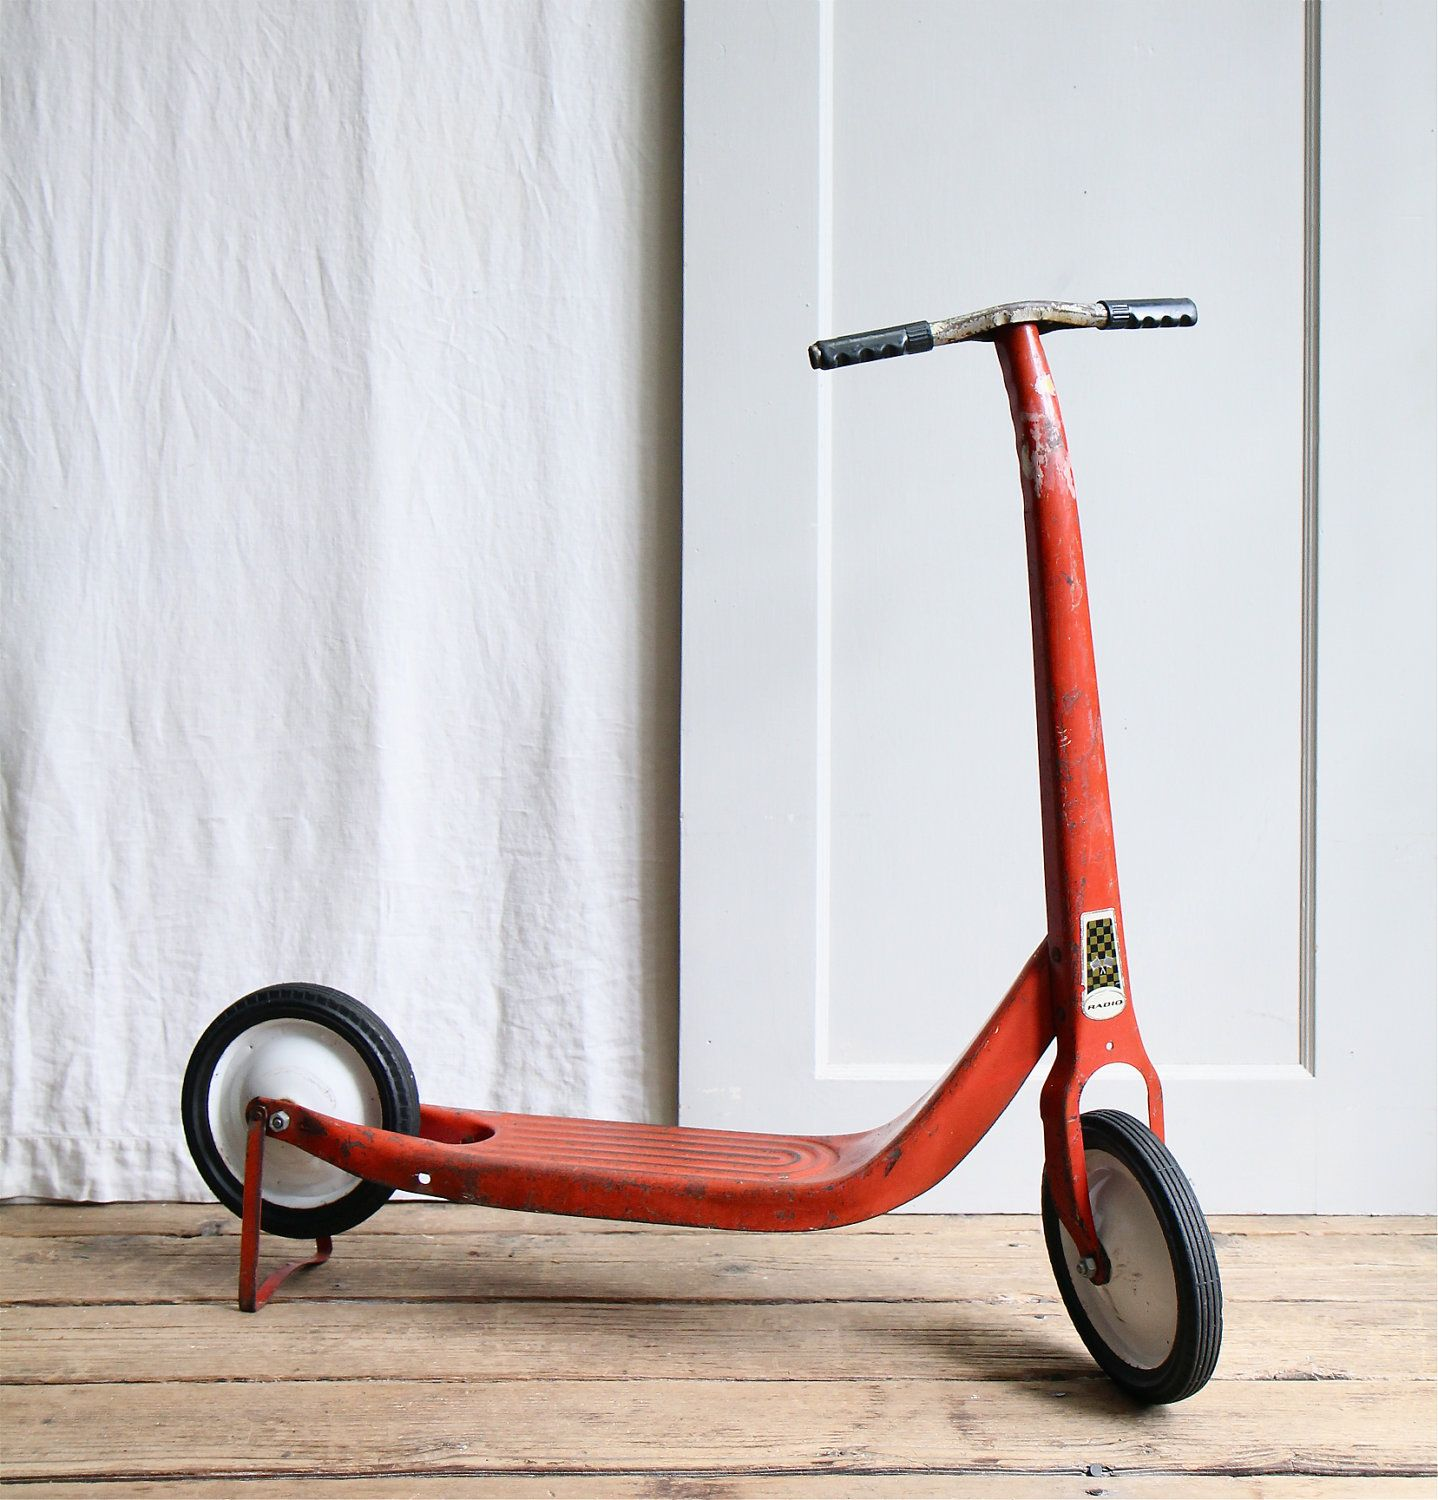 Vintage Radio Flyer Red Kick Scooter  I could really go fast